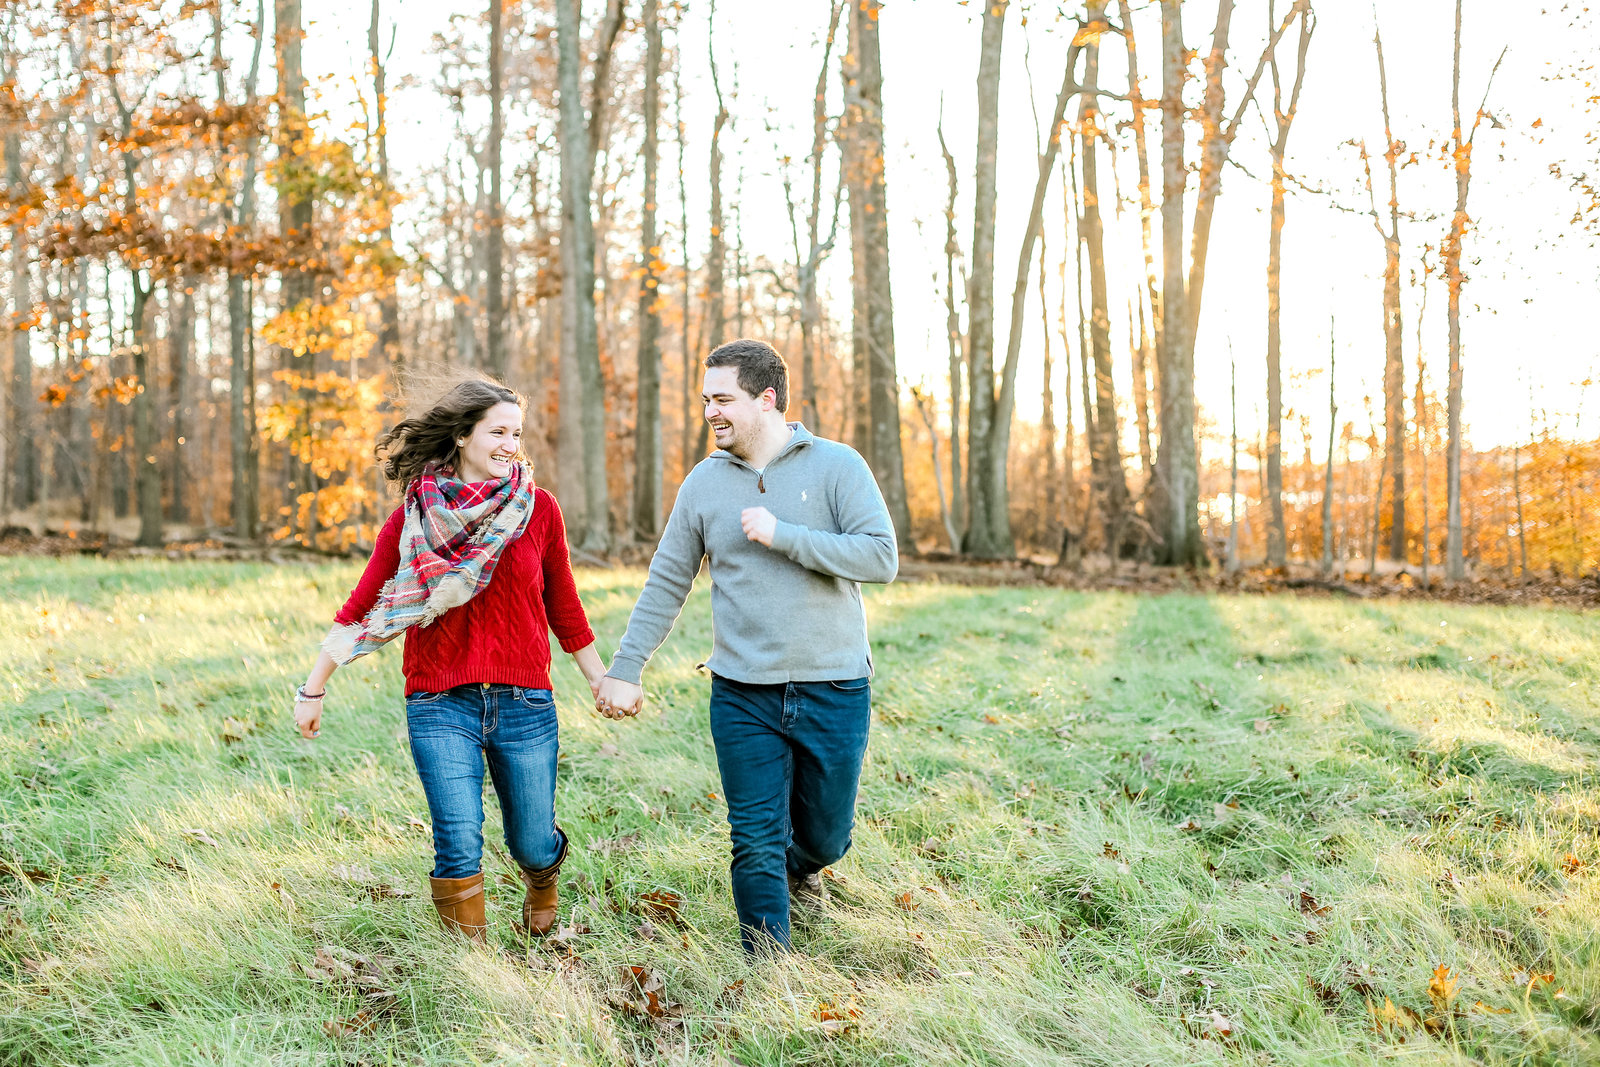 Bucks county Peace Valley Park Doylestown Lehigh Valley fall windy engagement session wedding and lifestyle photographer Lytle Photo Co (75 of 109)